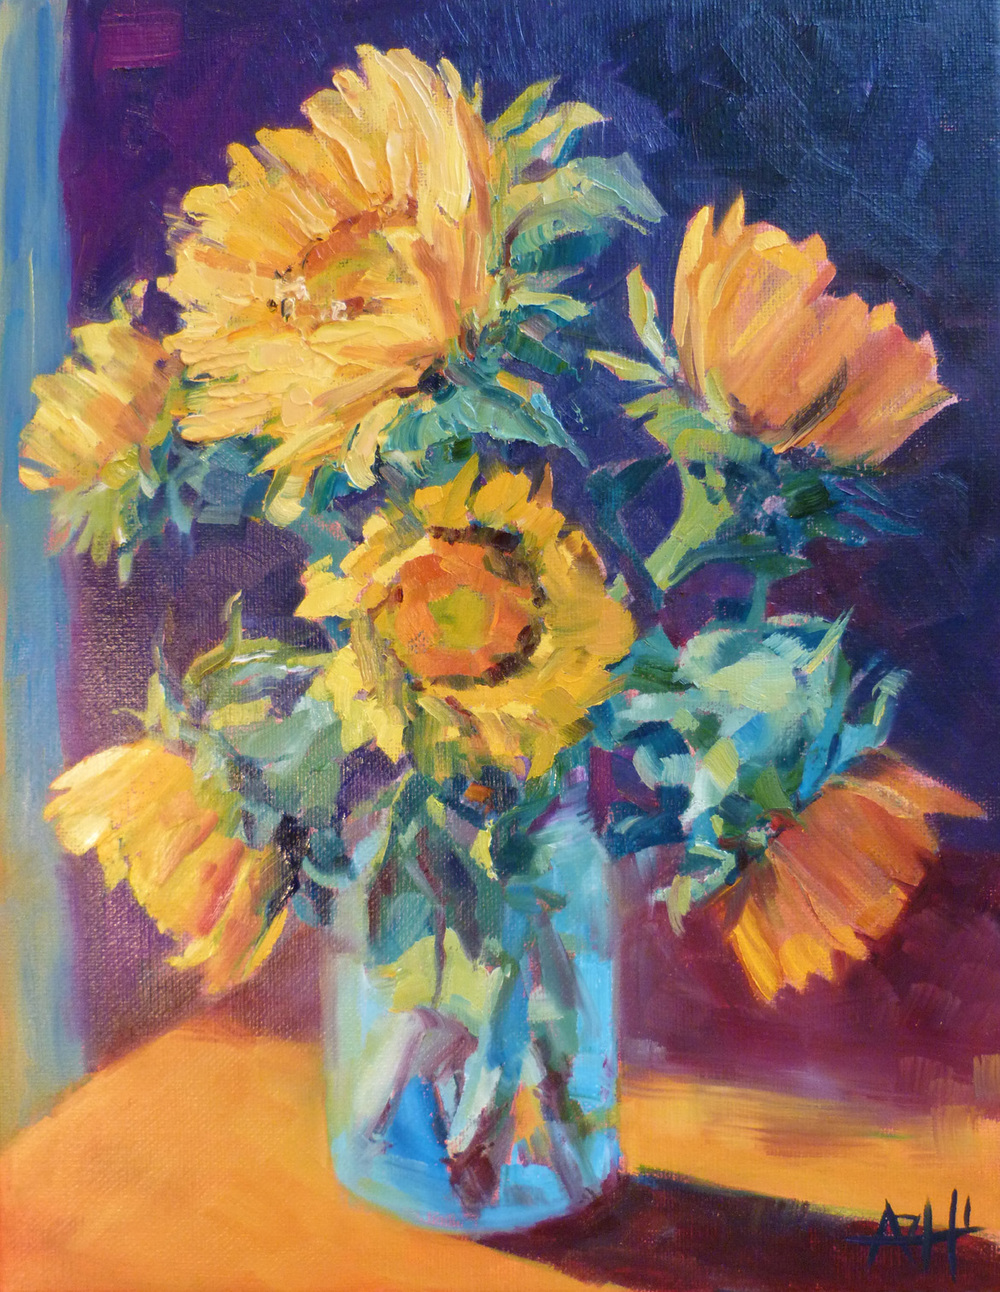 "SOLD, Sunflowers in the Light, Copyright 2014 Hirschten, Oil on Canvas 11"" x 14"""